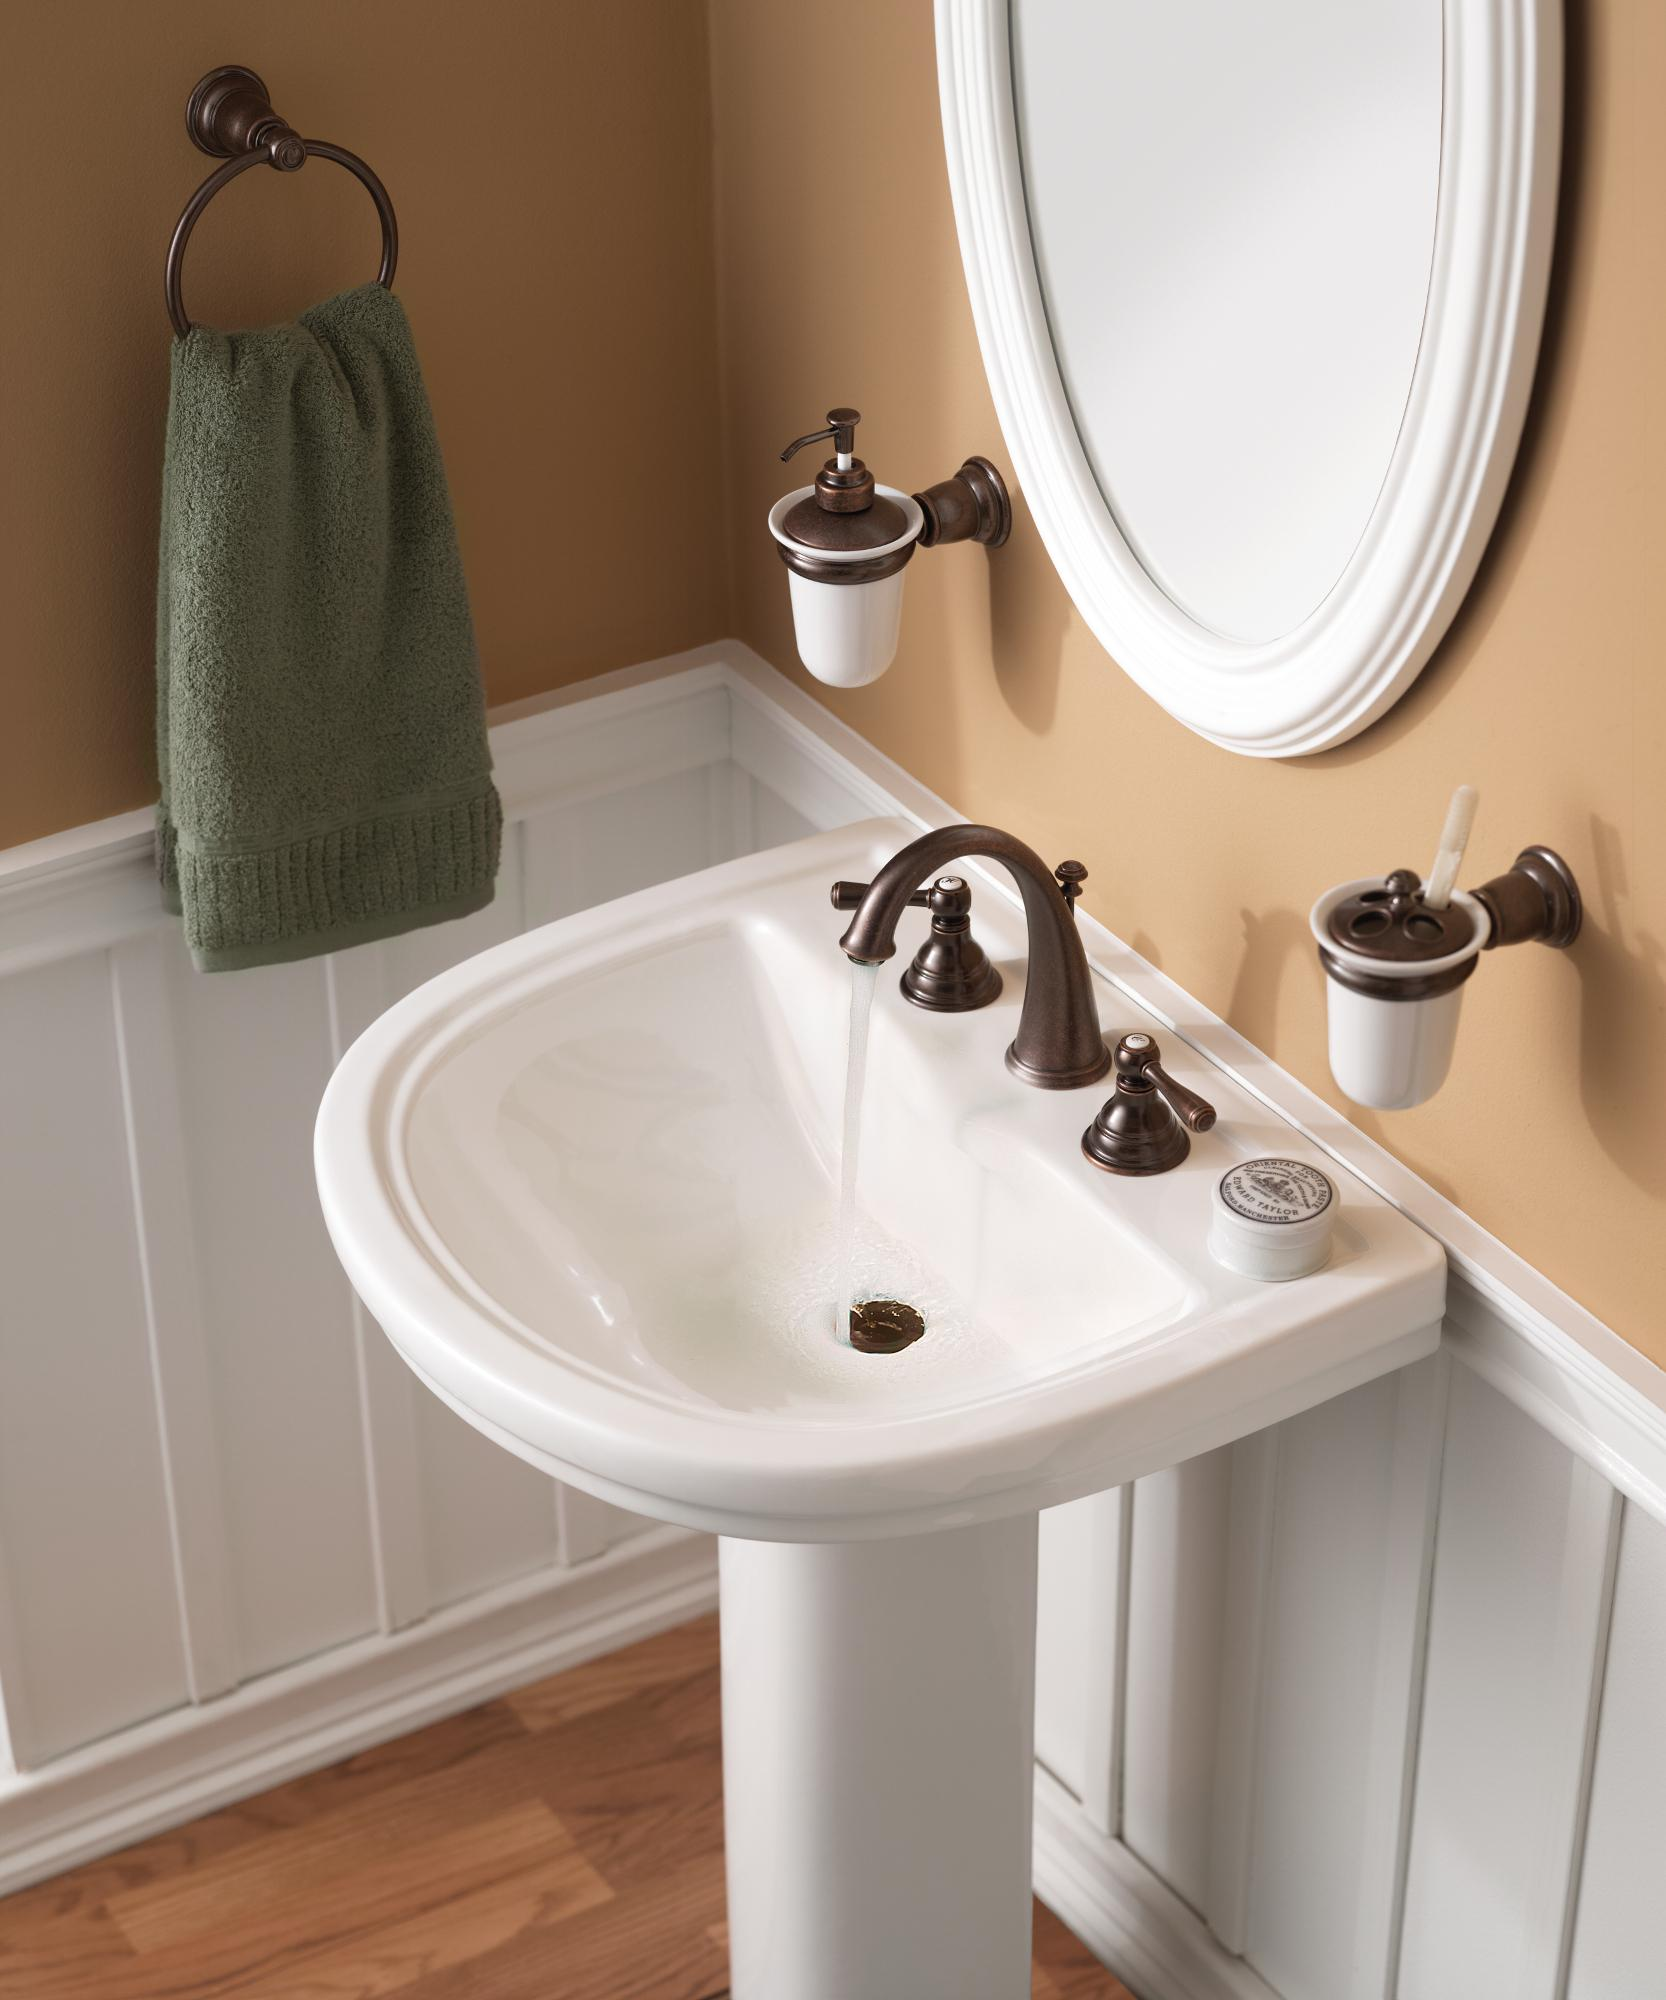 Wrought Iron Bathroom Faucets: Moen T6125WR Kingsley Two-Handle High Arc Bathroom Faucet